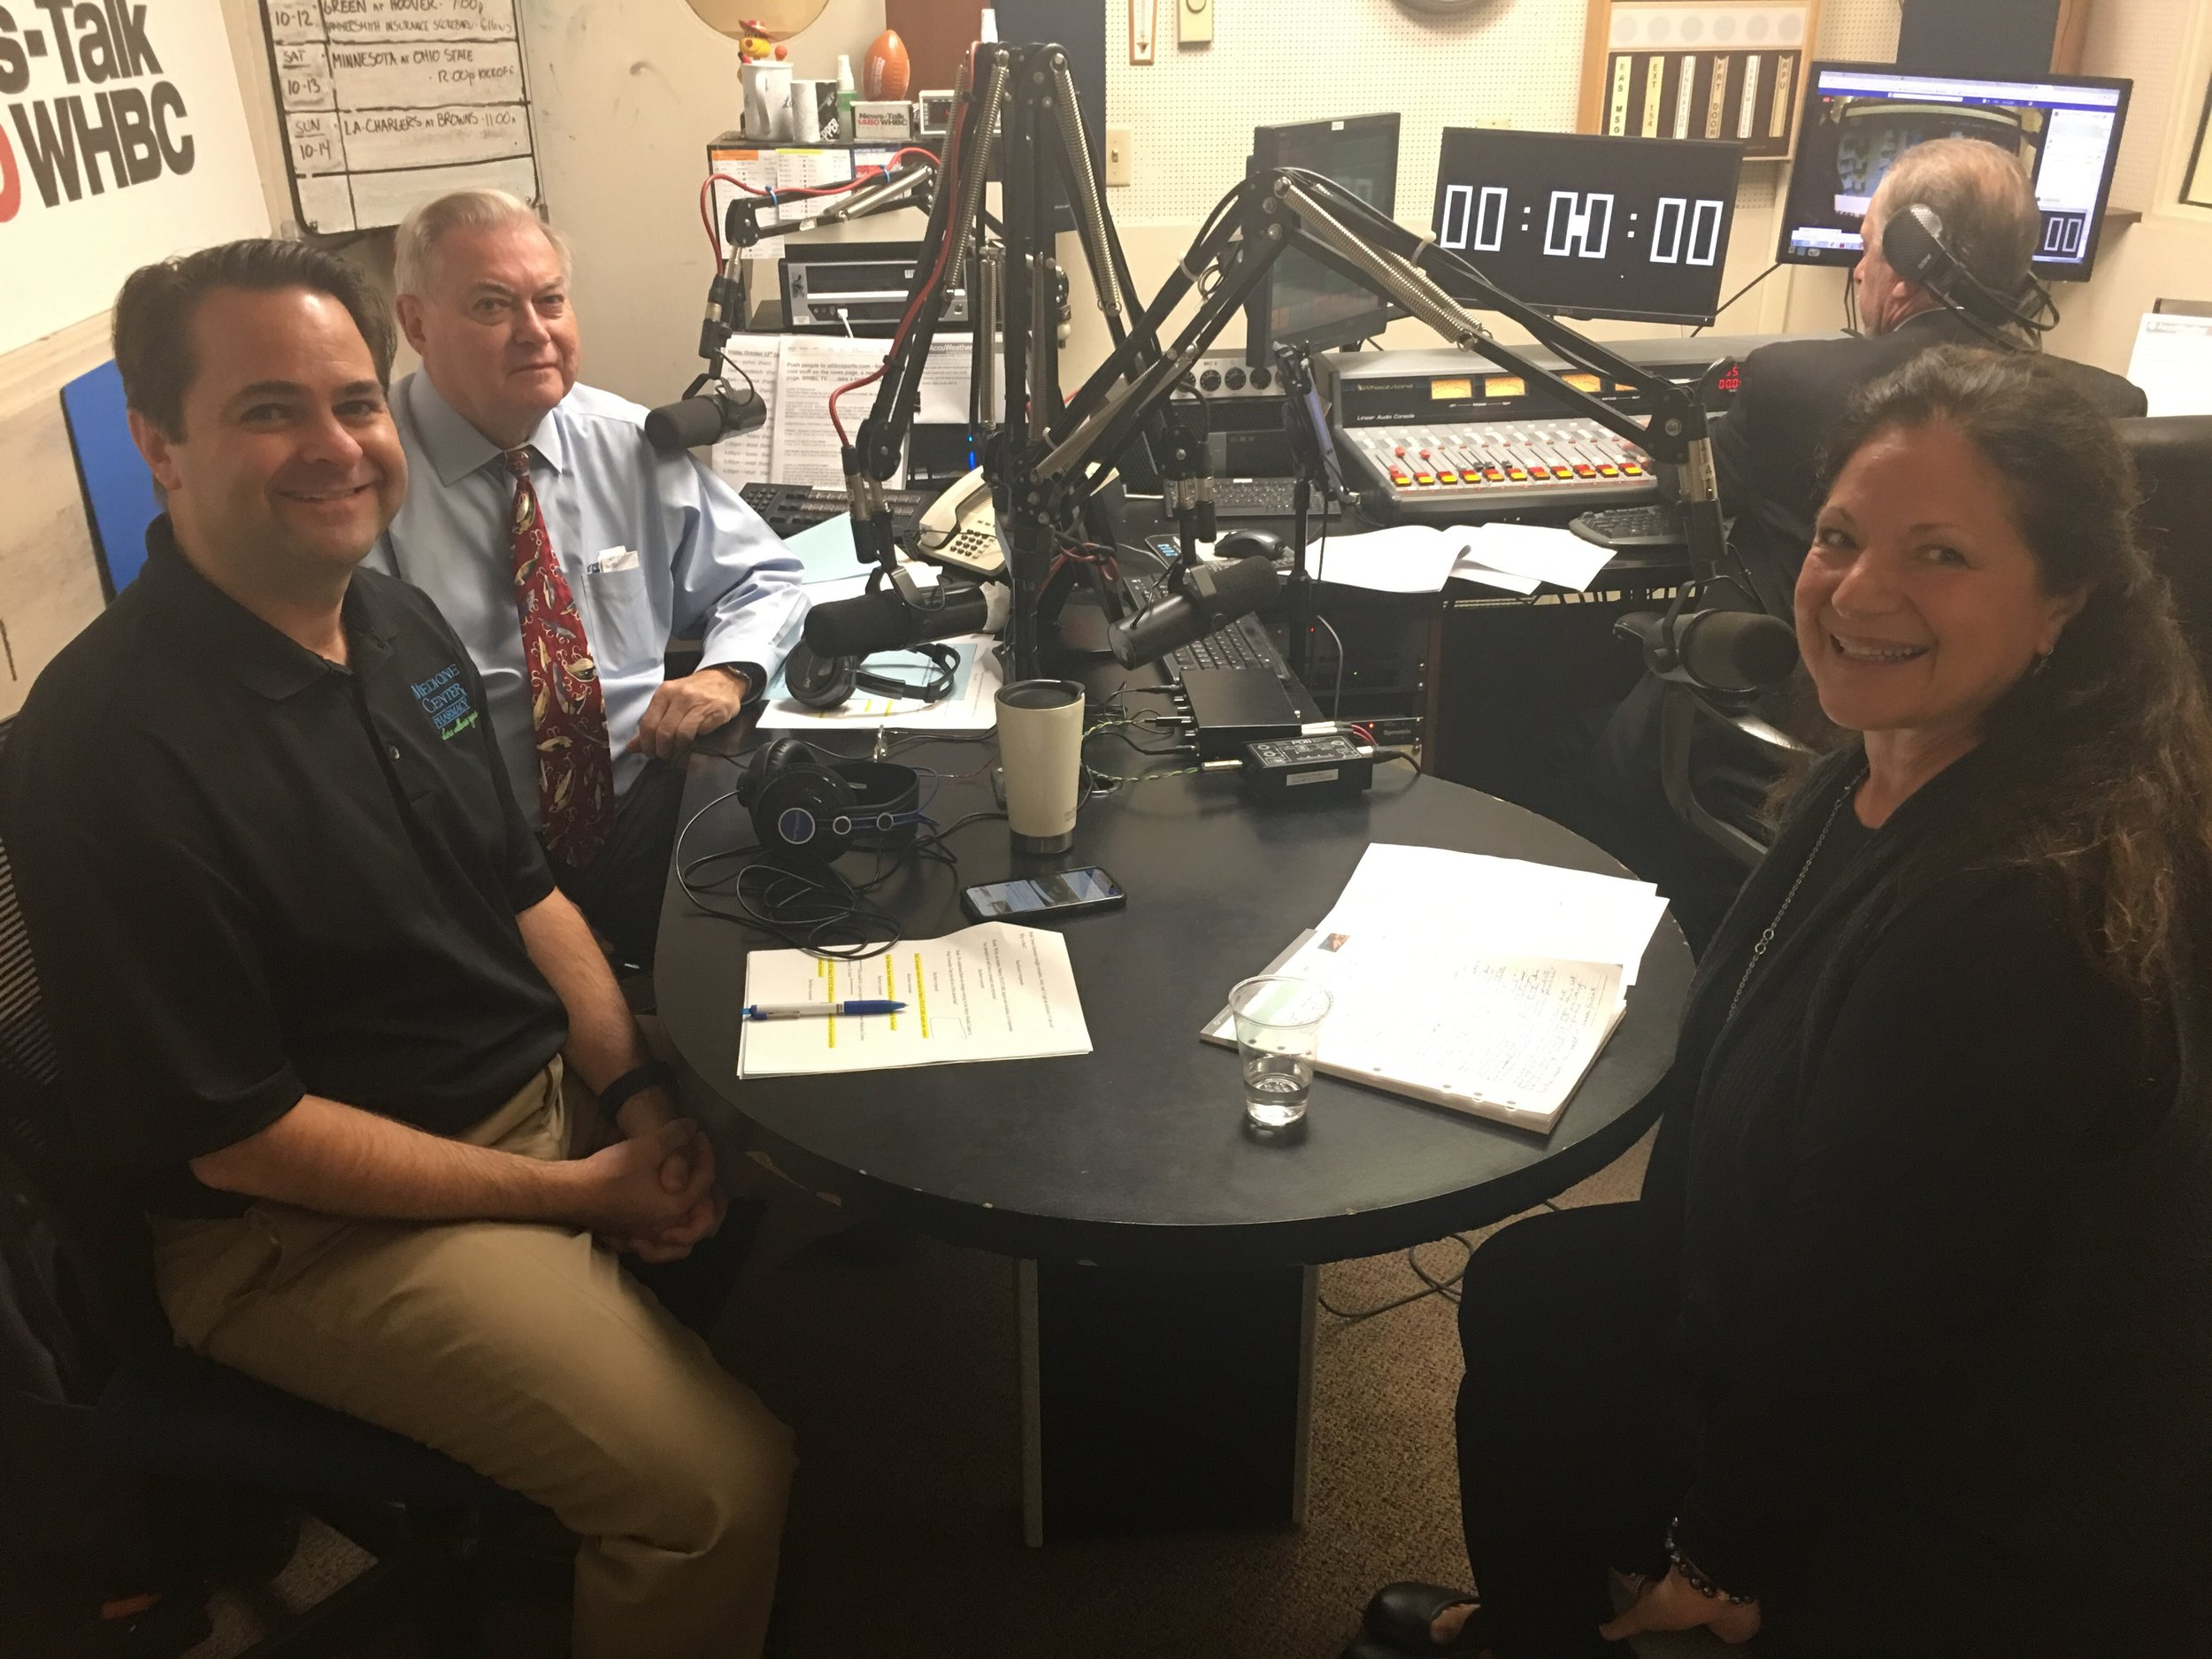 Pharmacists and hosts, Brad White and Paul White talk with Mercy Medical Center's Barbara Frustaci about treatment options at Statcare and Emergency Departments.